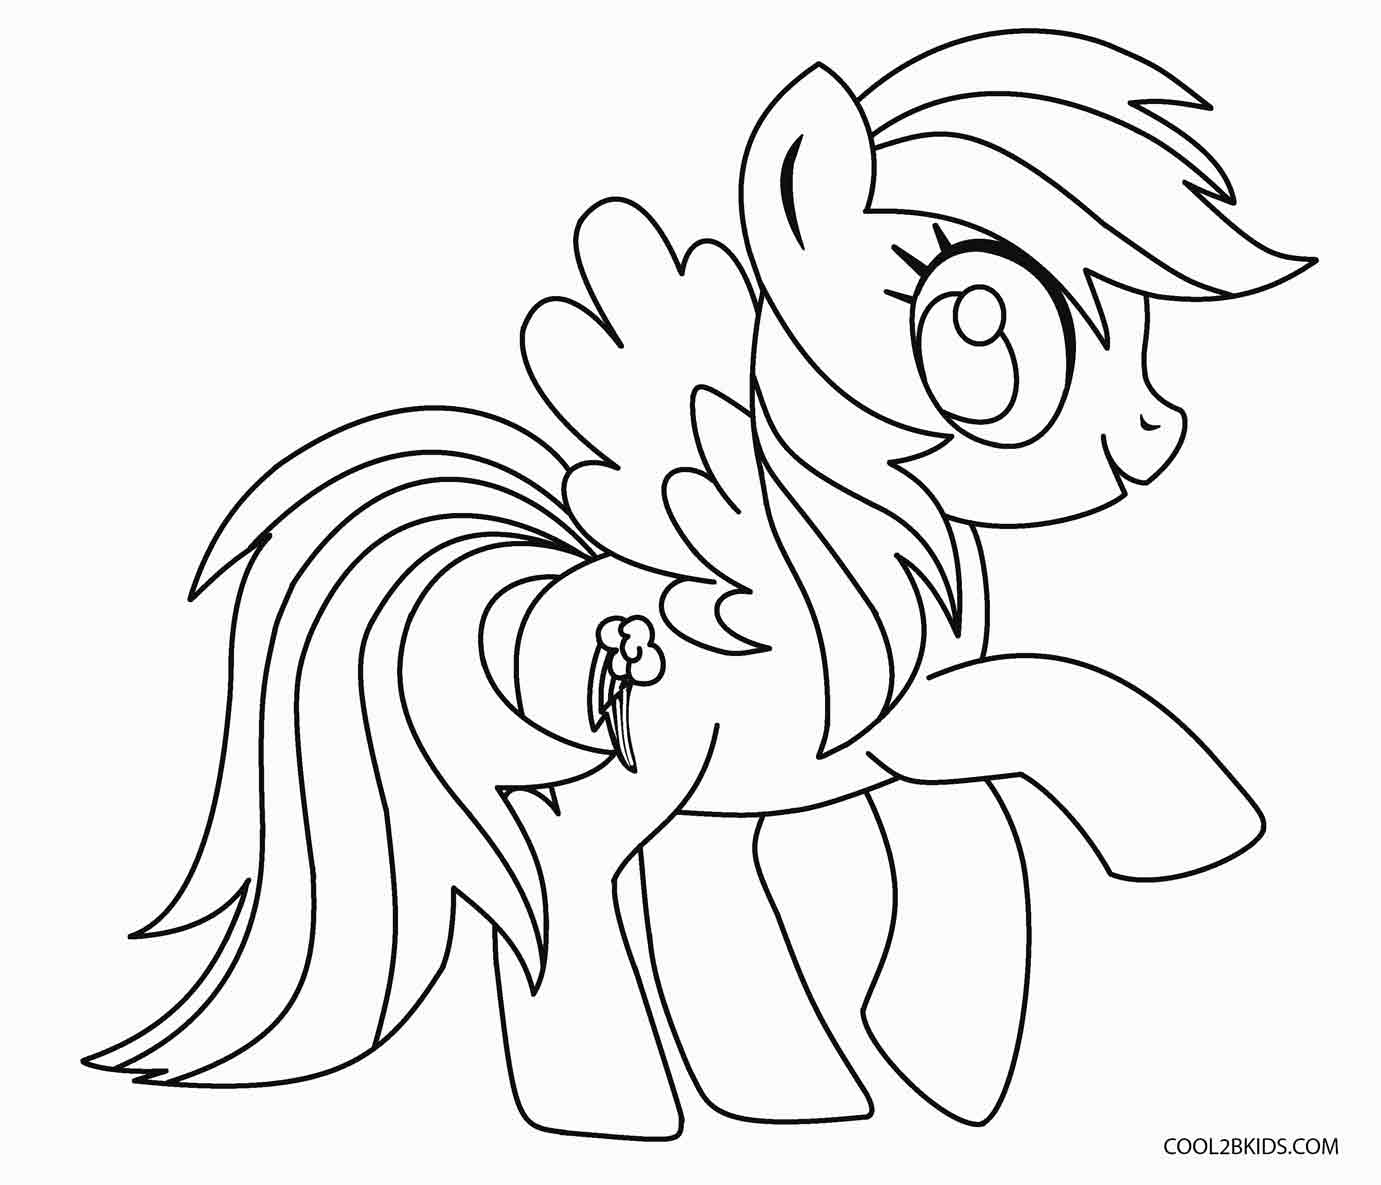 pony colouring pictures coloring pages for kids coloring pages kids coloring pages colouring pictures pony